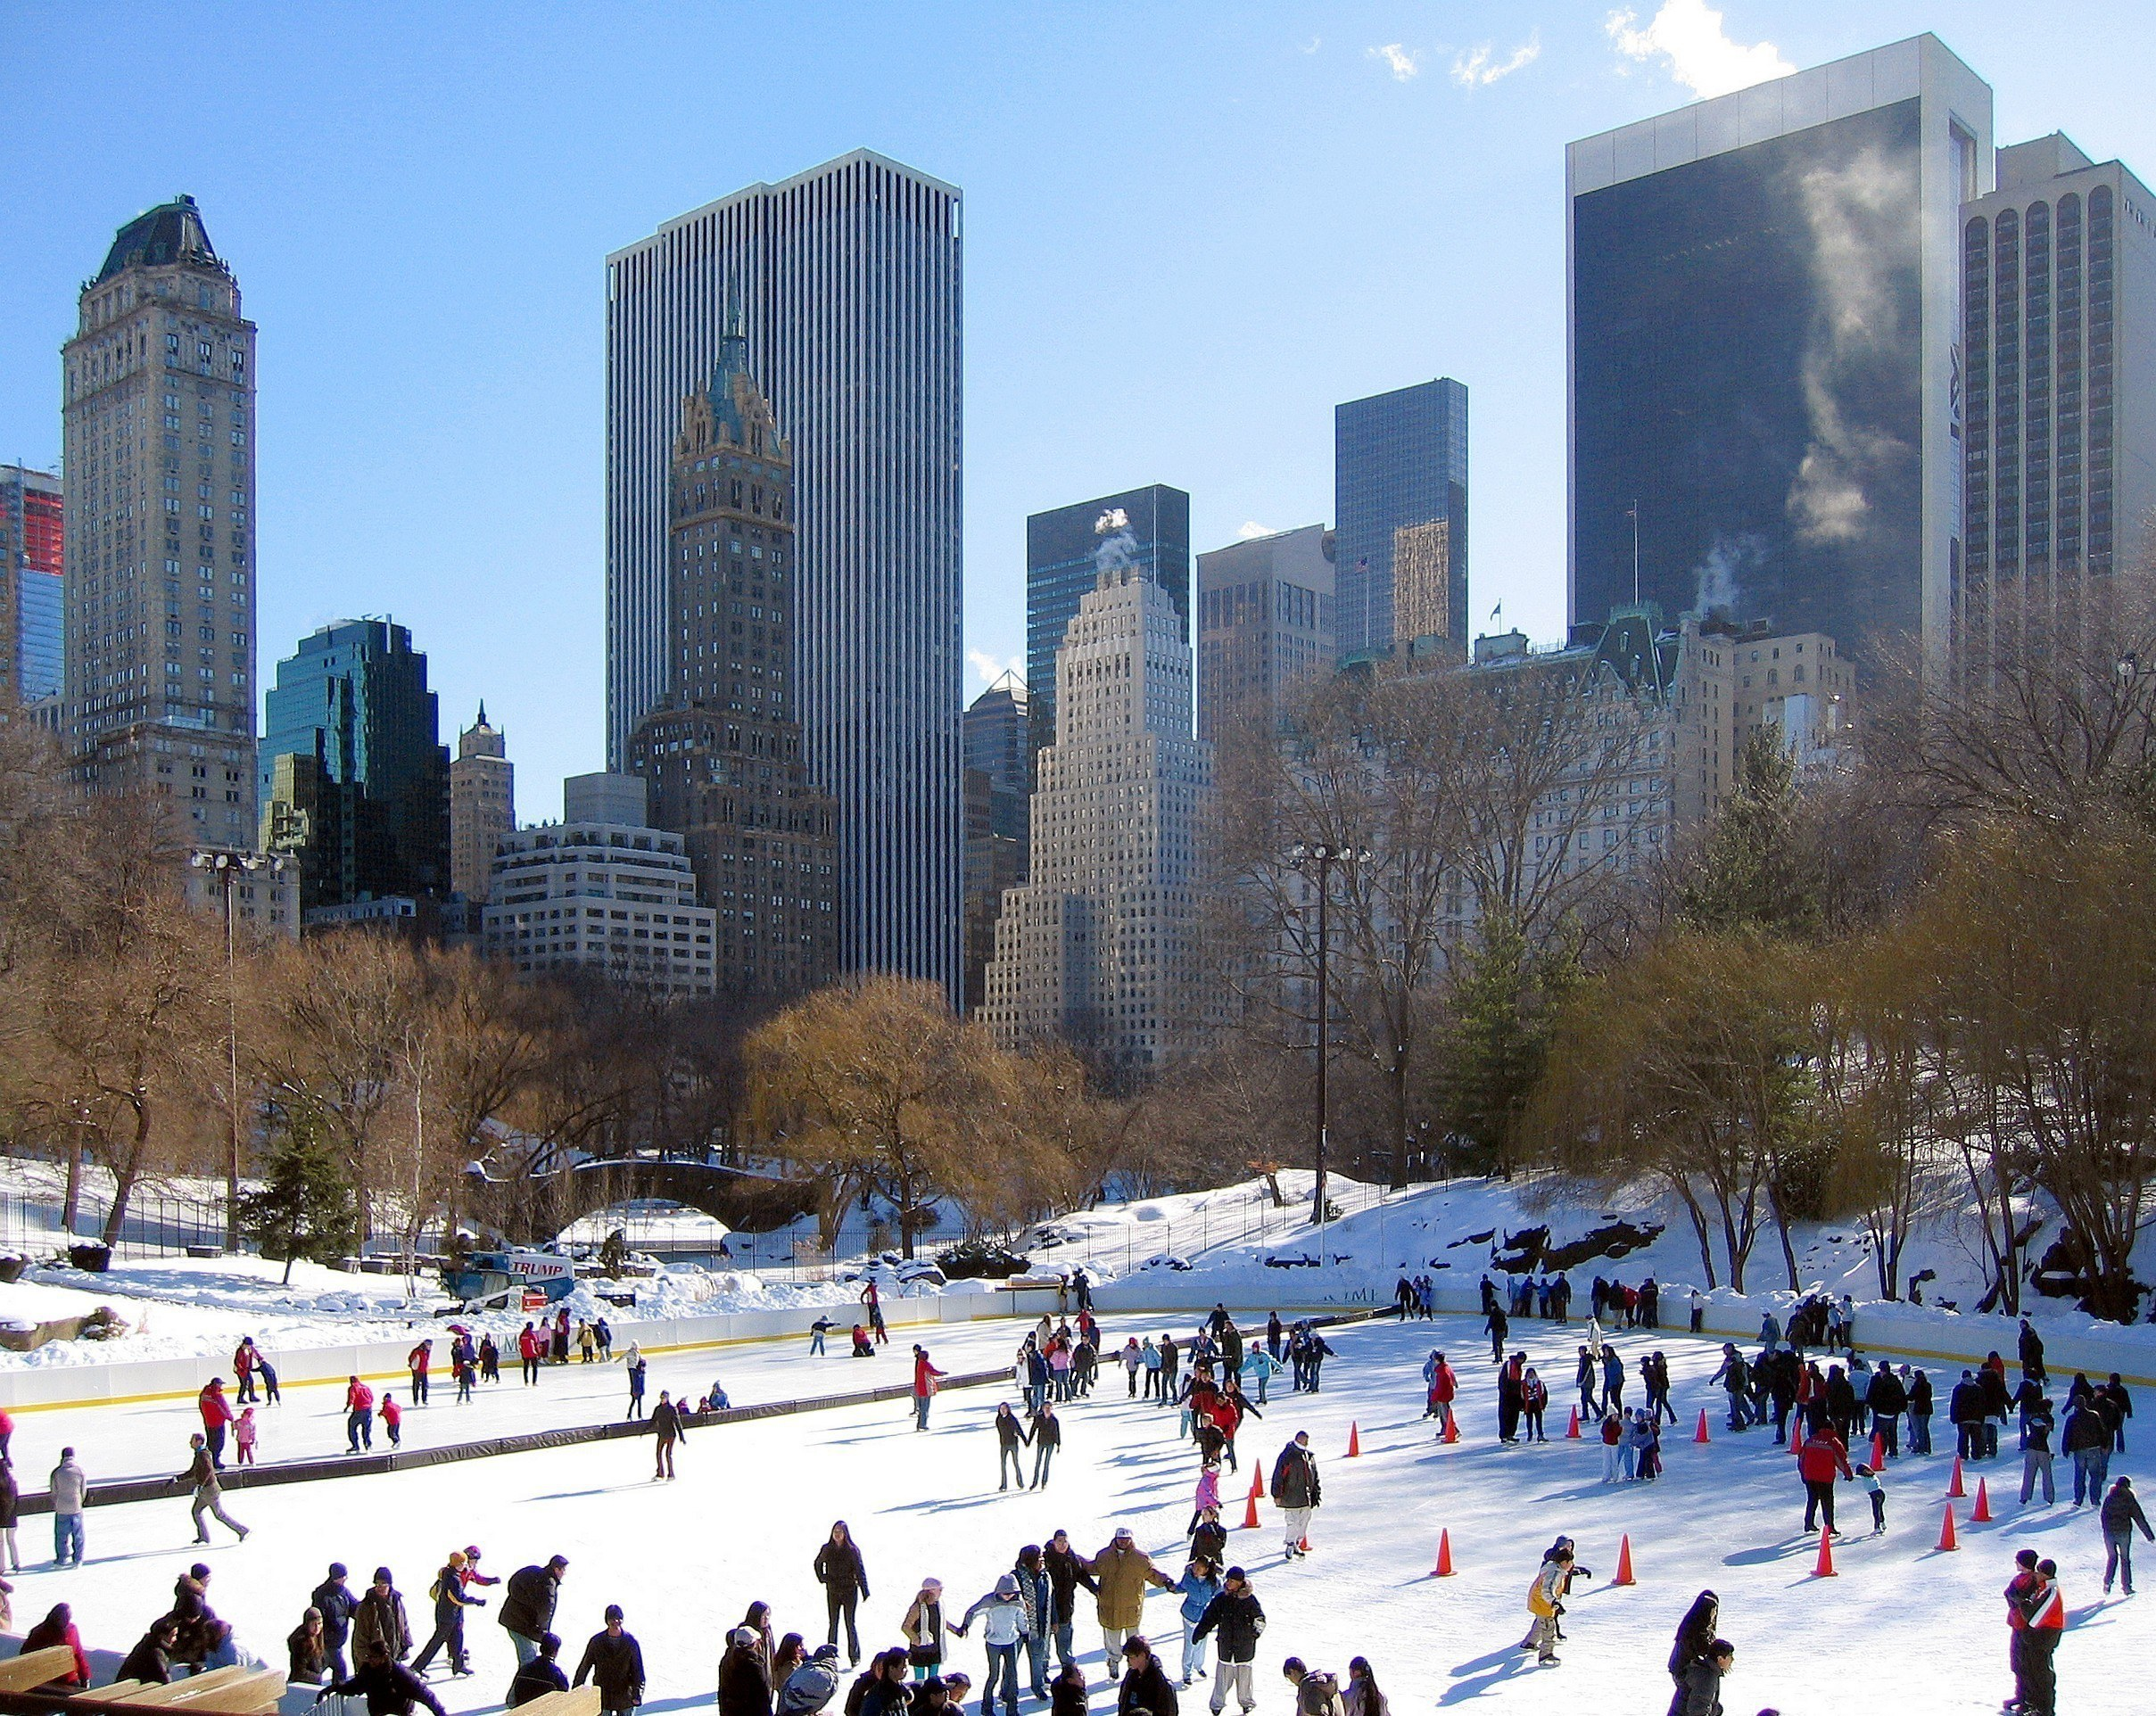 Central_Park_Wollman_Rink